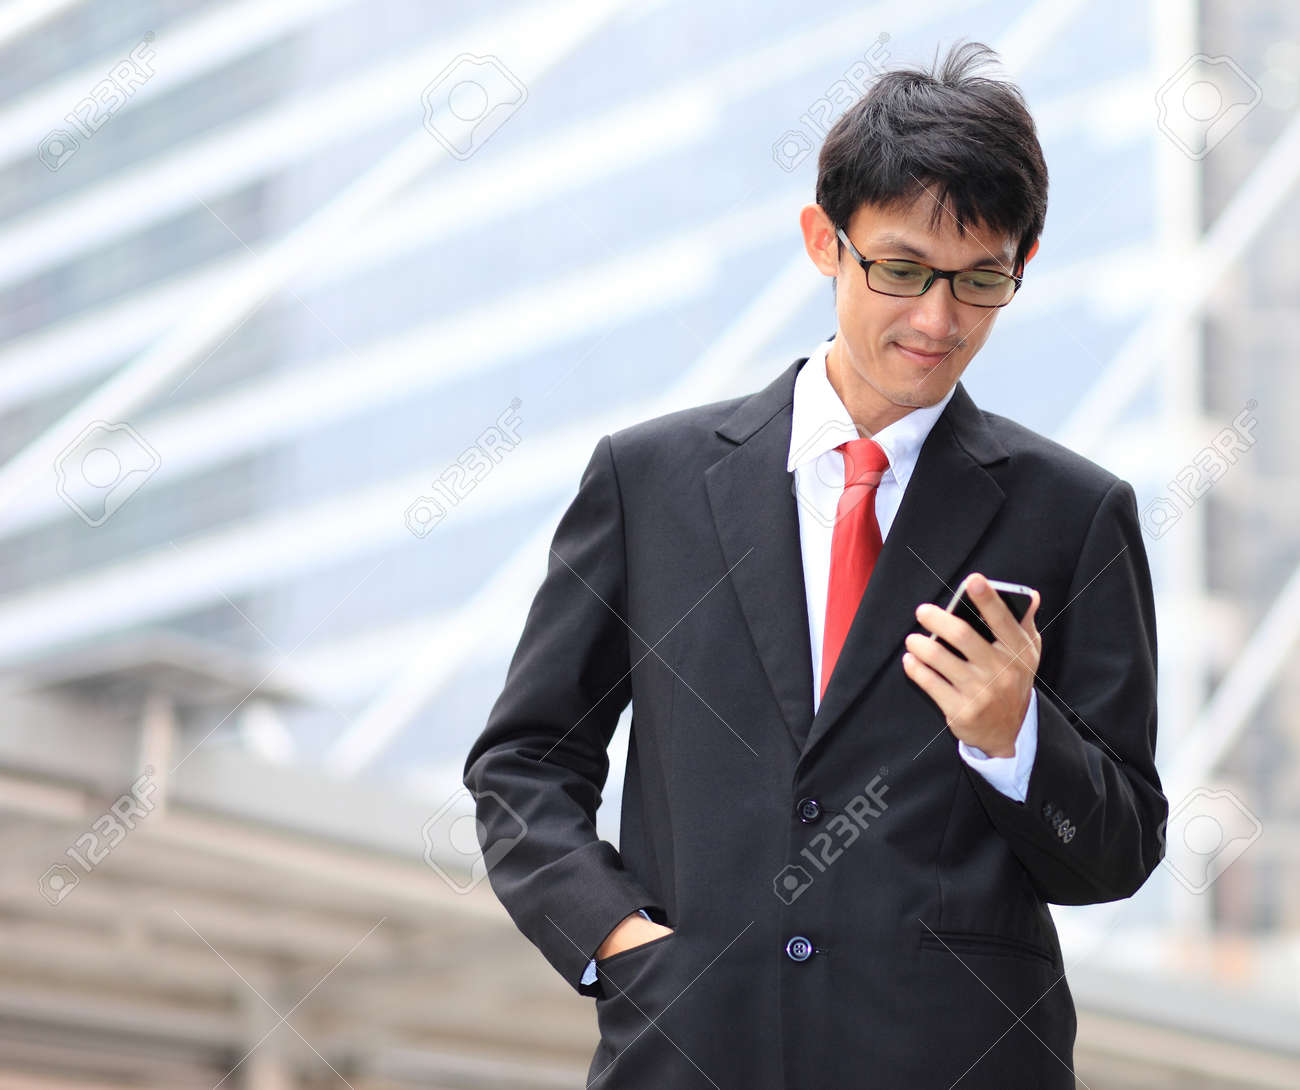 d6ebdb8ed6b Man on smart phone - young business man. Casual urban professional  businessman using smartphone smiling